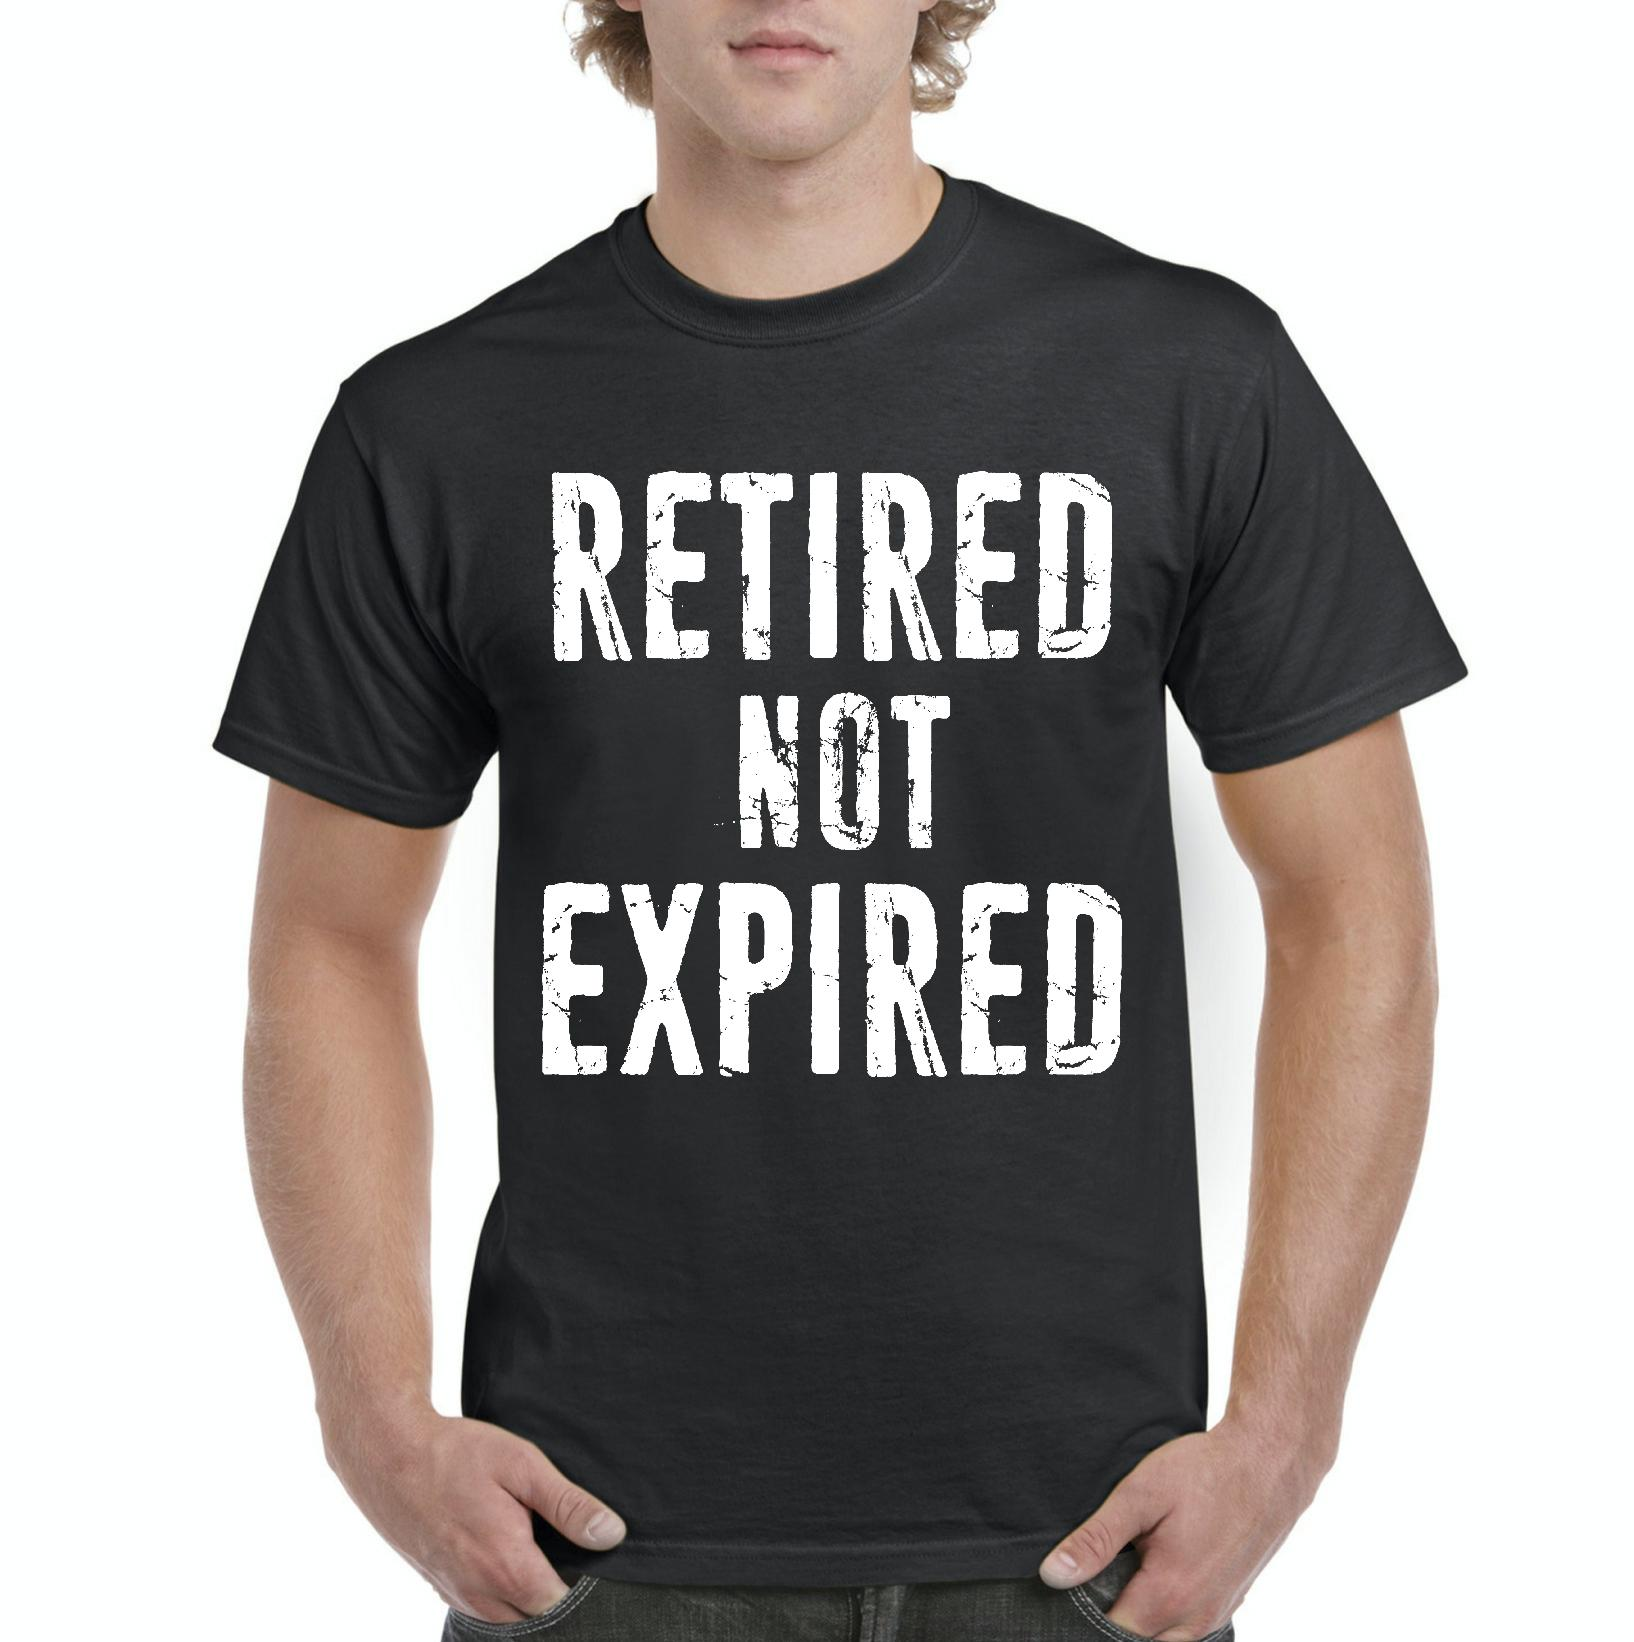 Funny T-Shirt Retired Not Expired Funny Retirement Fathers Day Birthday Gift  Mens Shirts